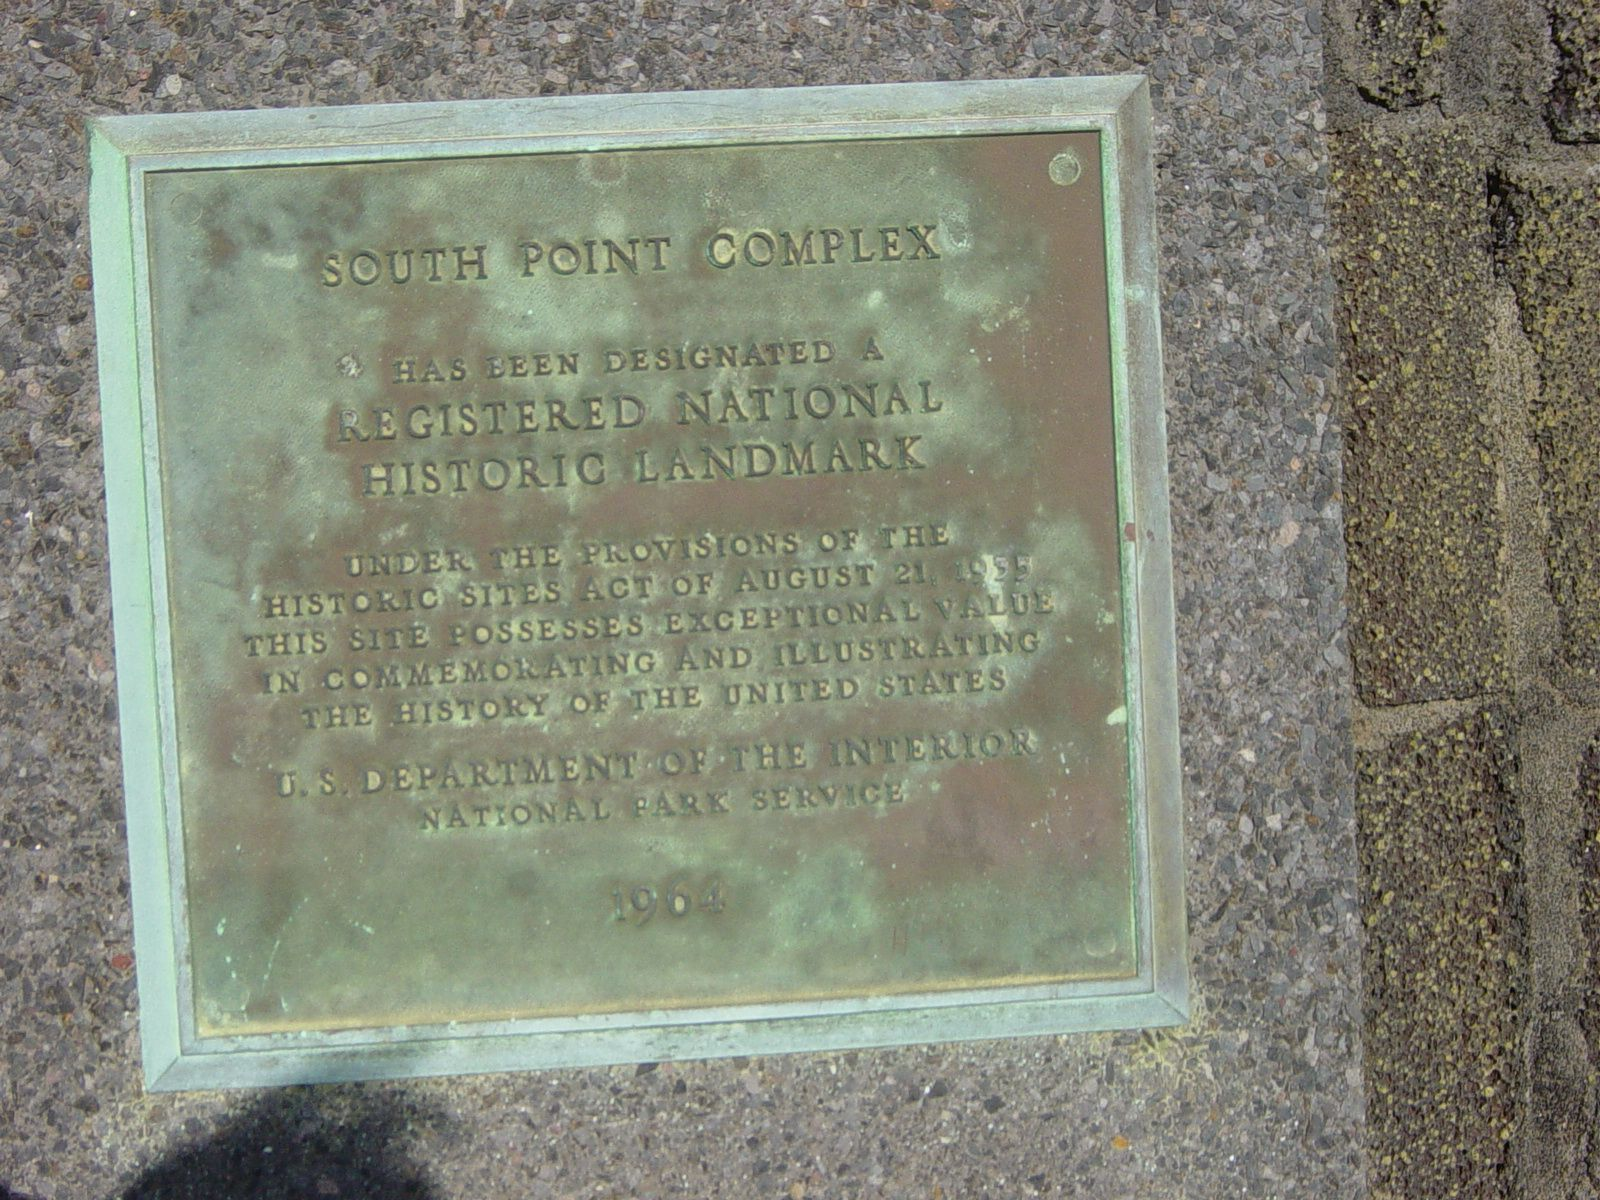 South Point complex Marker